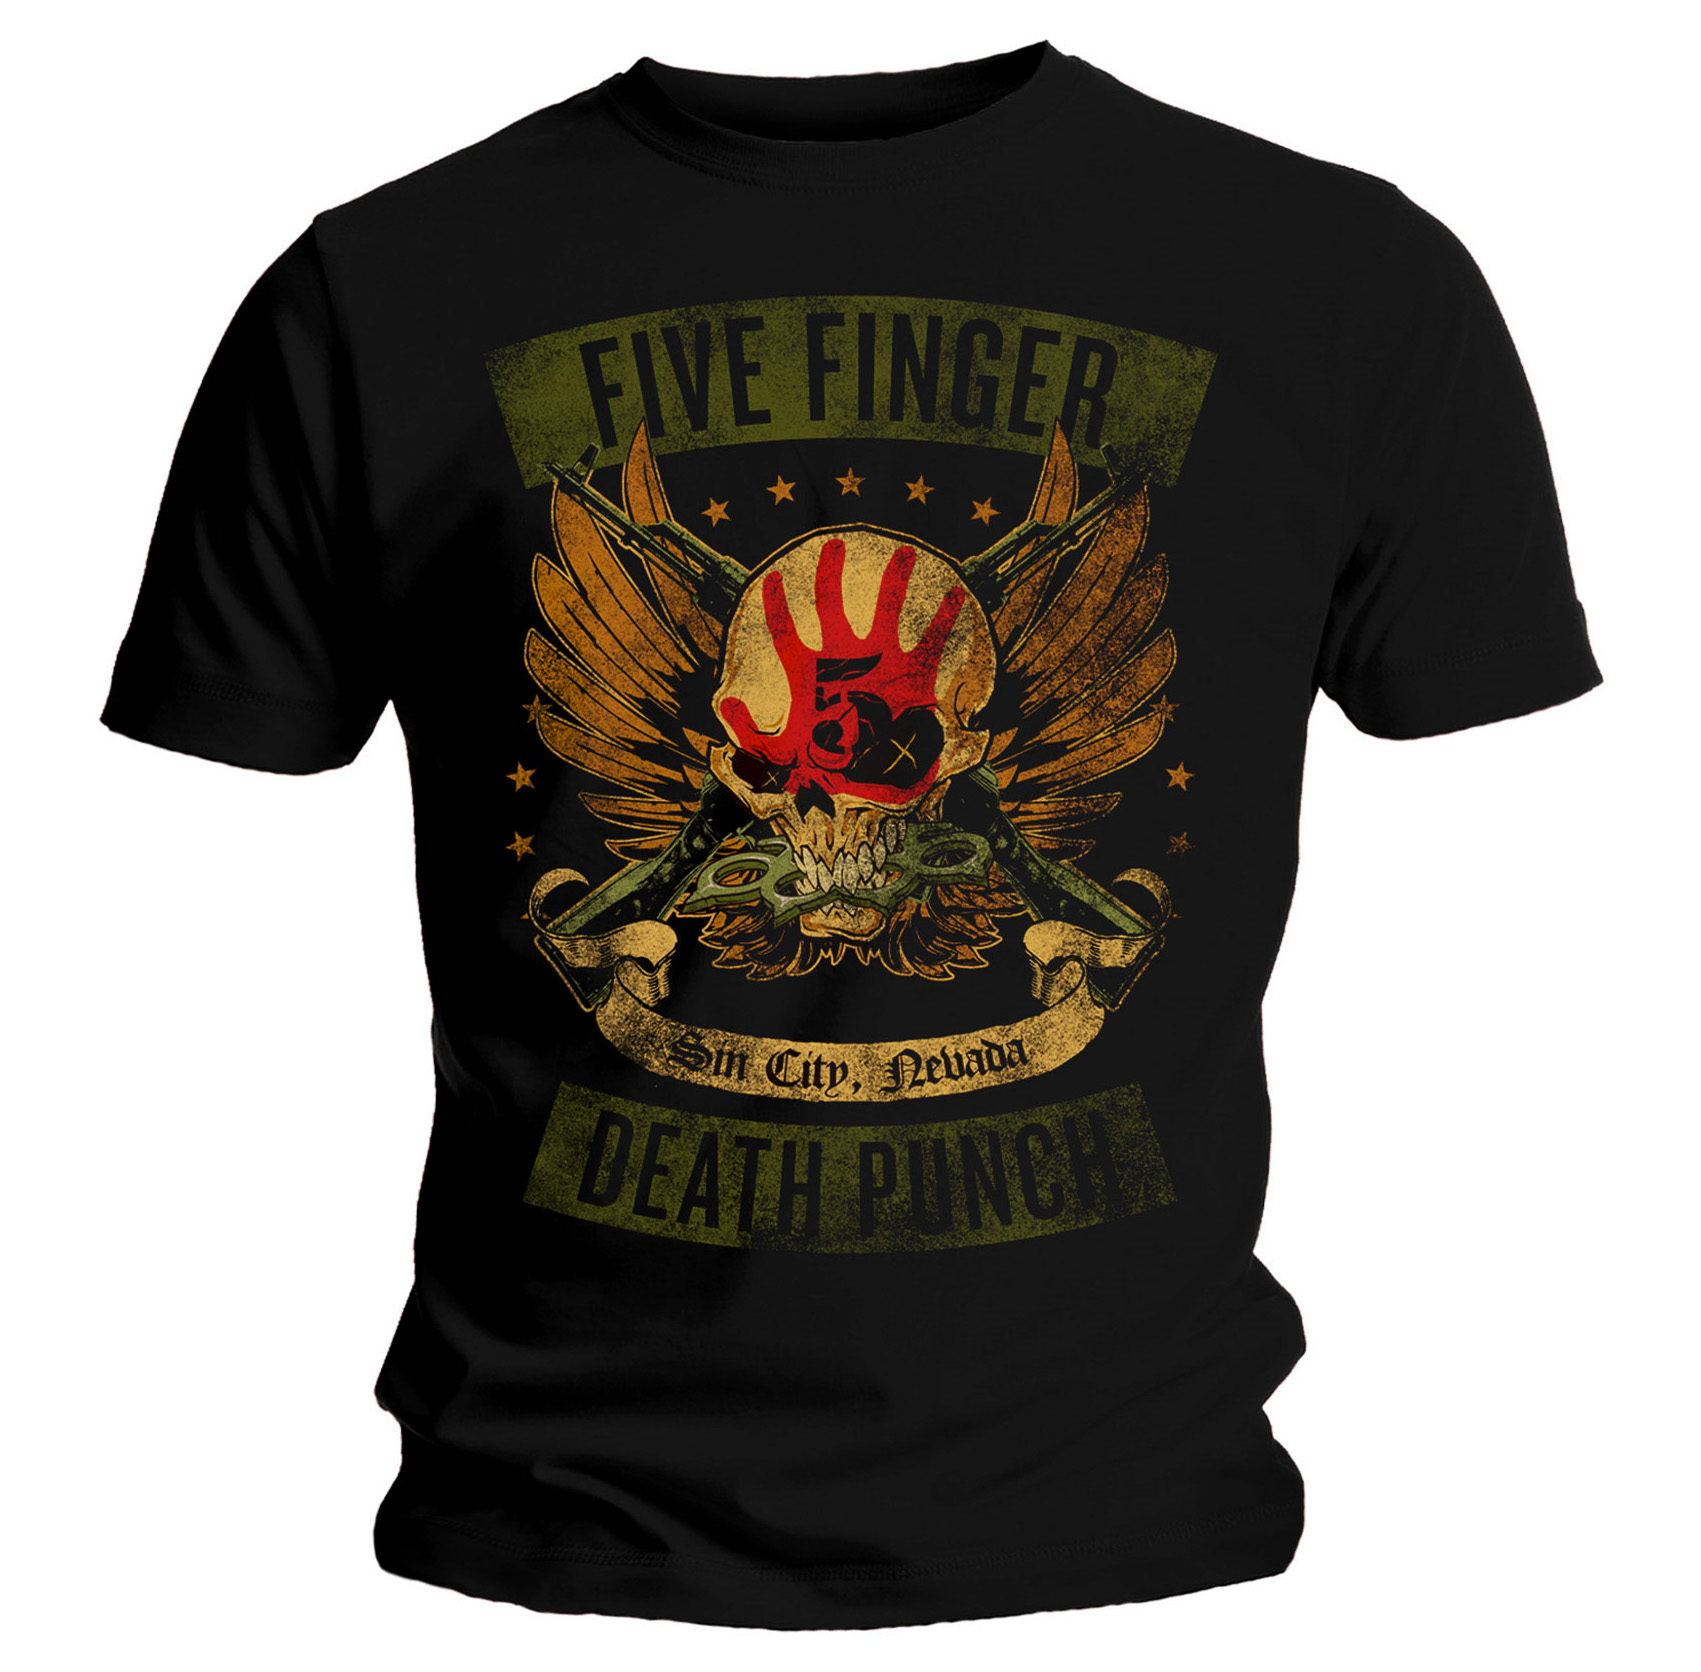 Official-T-Shirt-Five-Finger-Death-Punch-Trouble-039-Locked-amp-Loaded-039-All-Sizes thumbnail 3